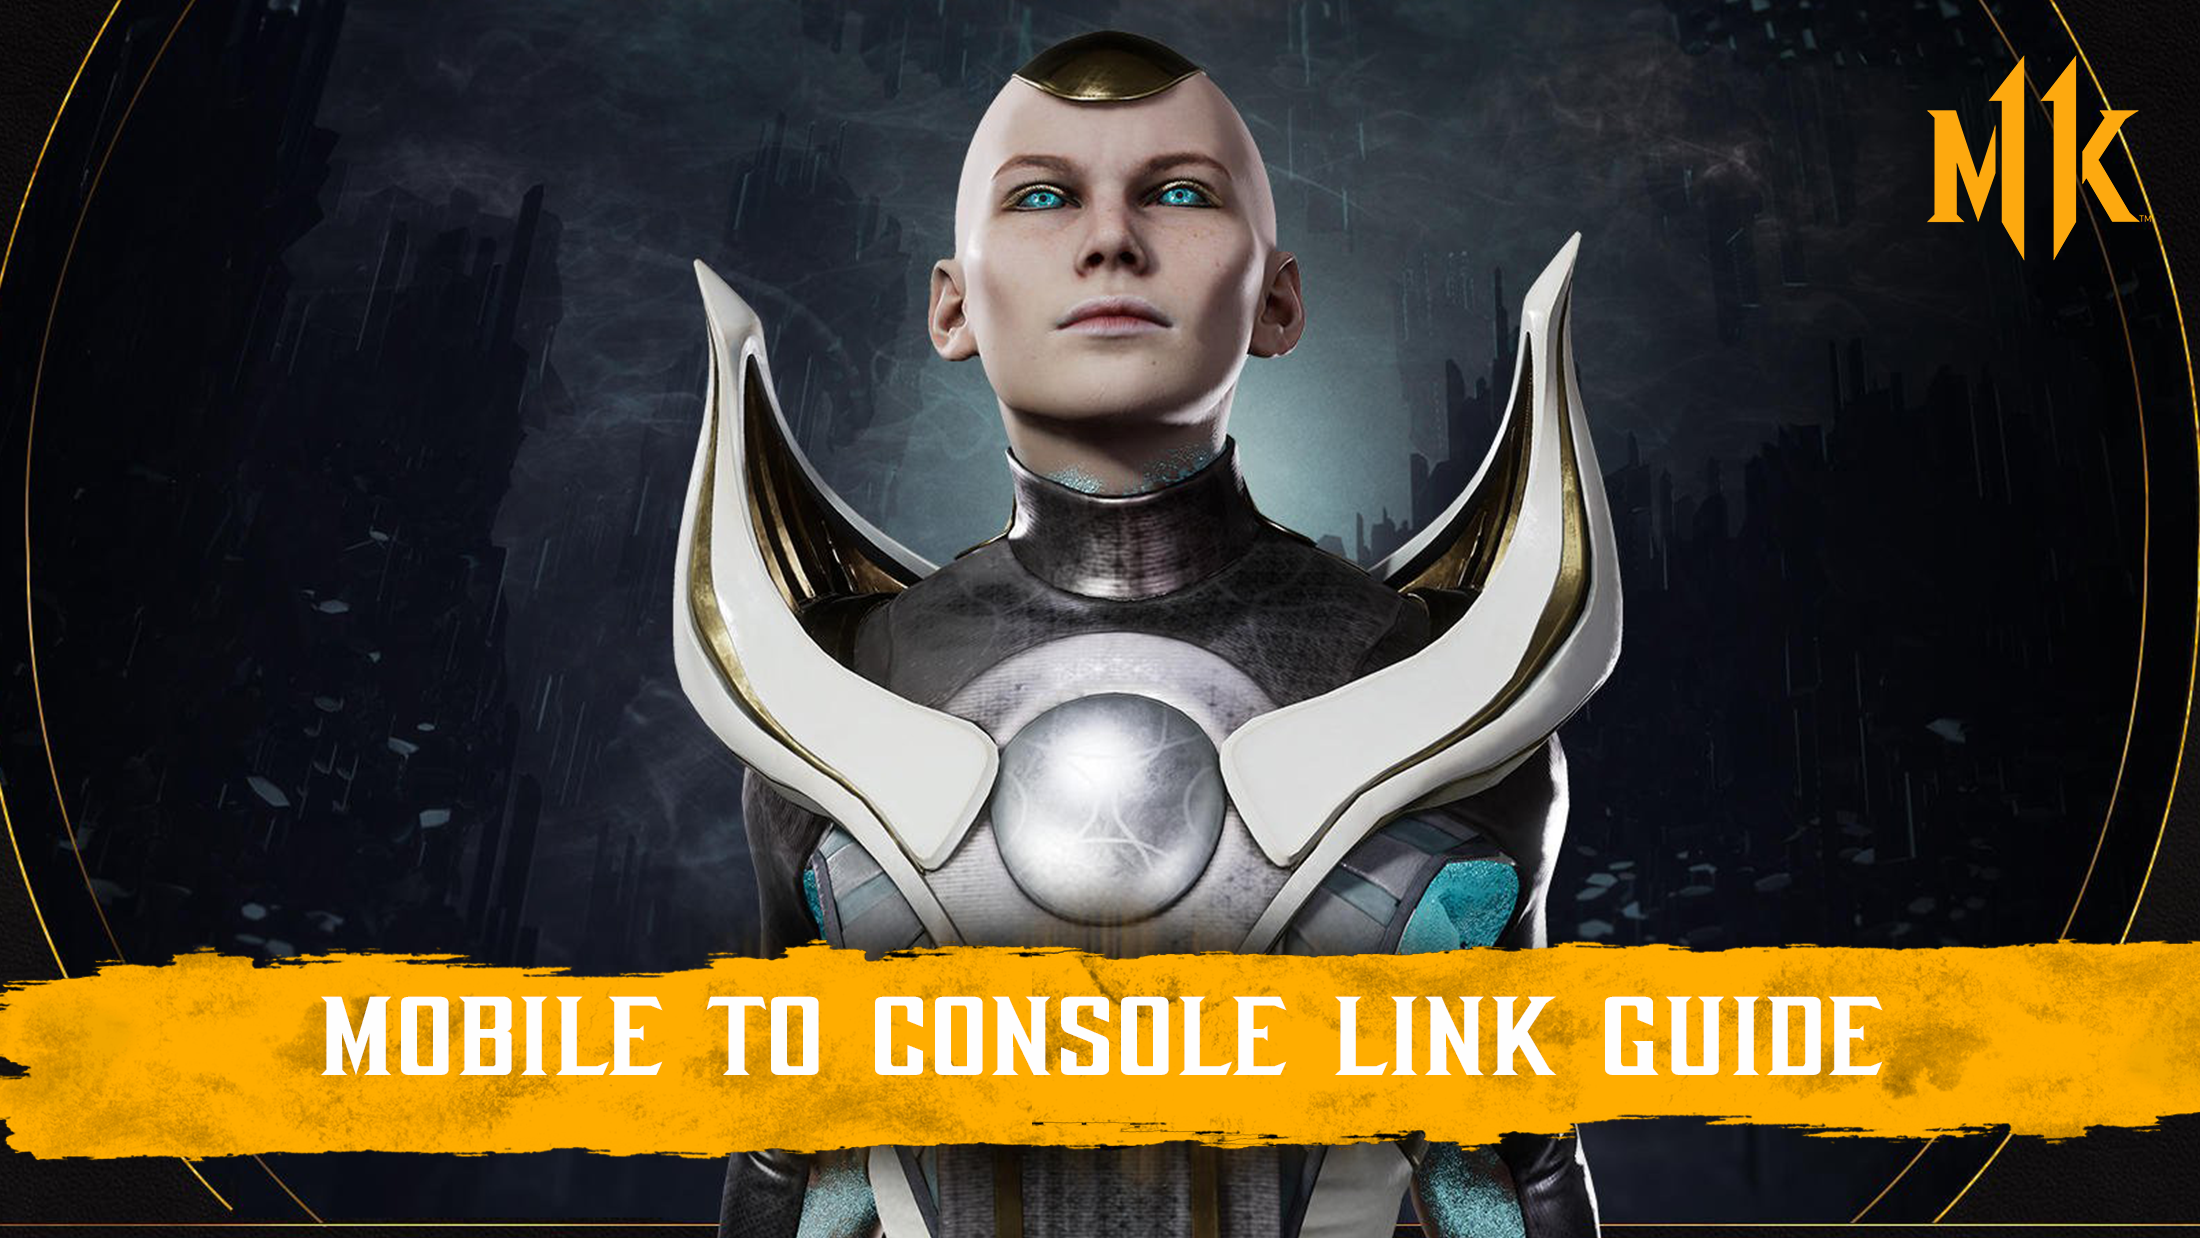 MOBILE_CONSOLE_LINK_GUIDE.png